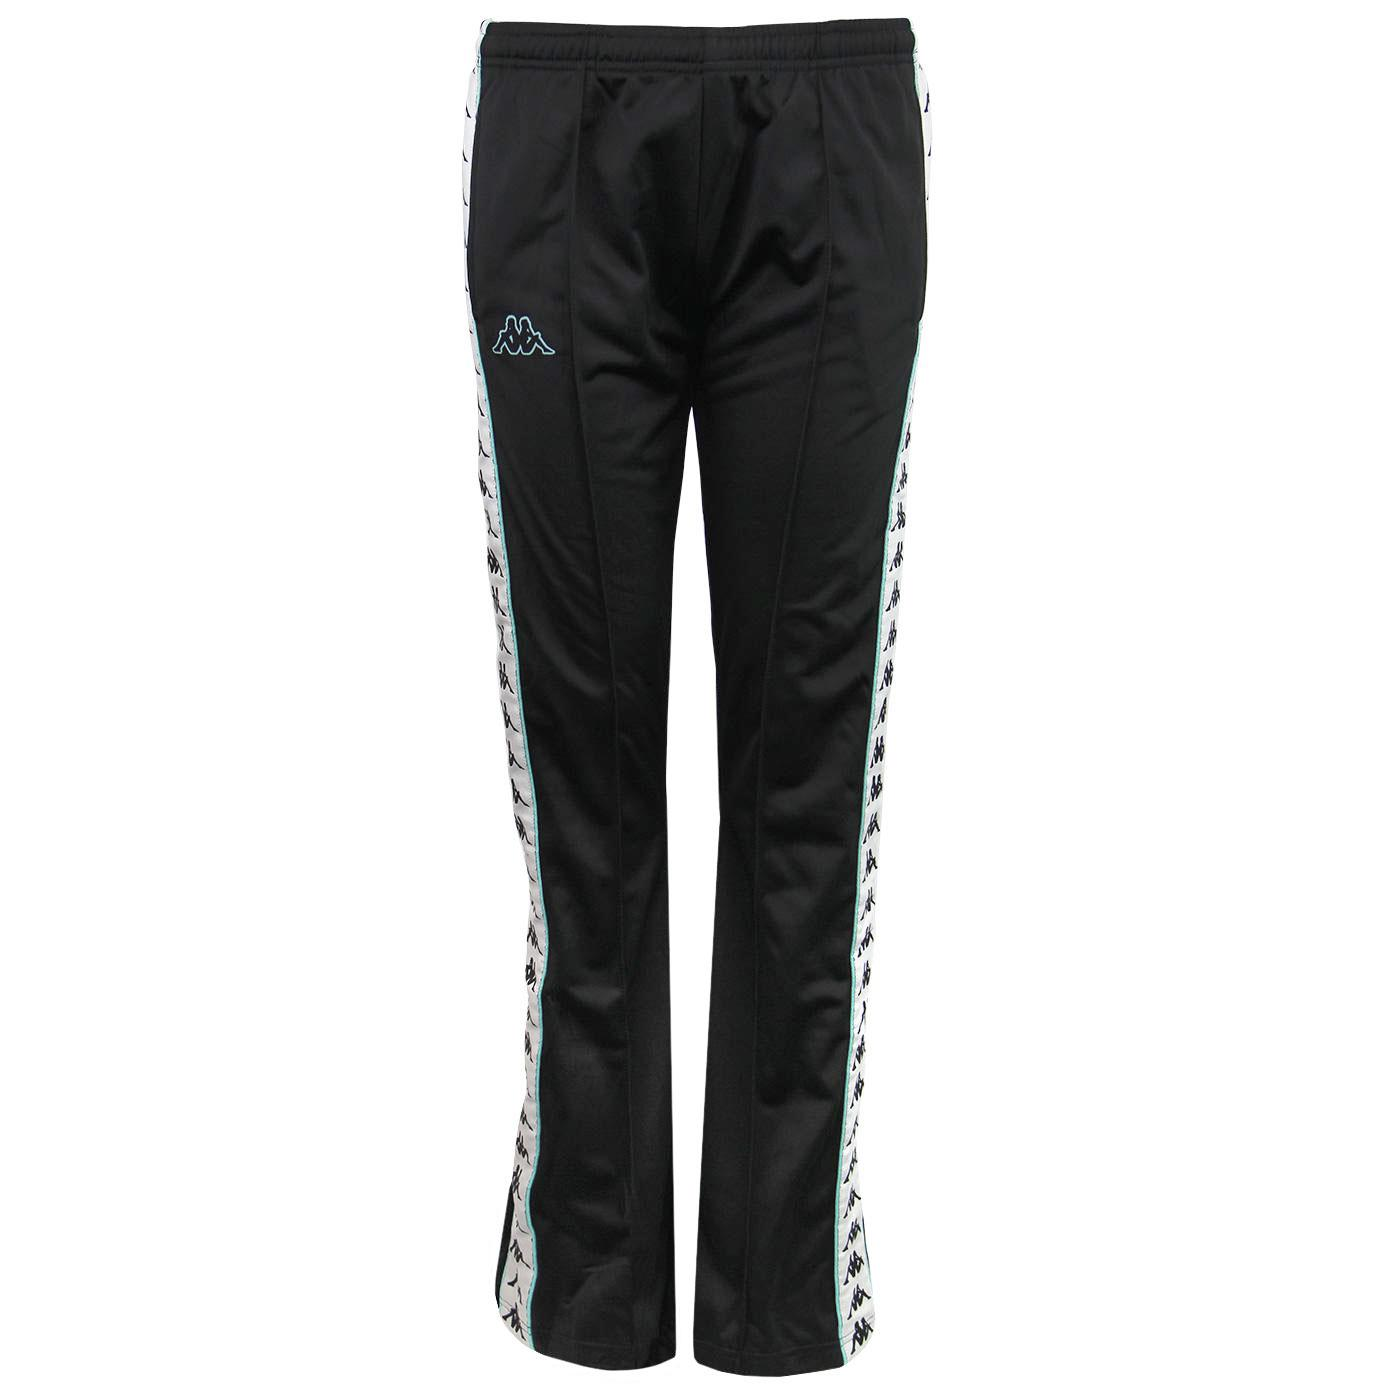 Astoria Banda KAPPA Women's Snap Track Pants BLACK